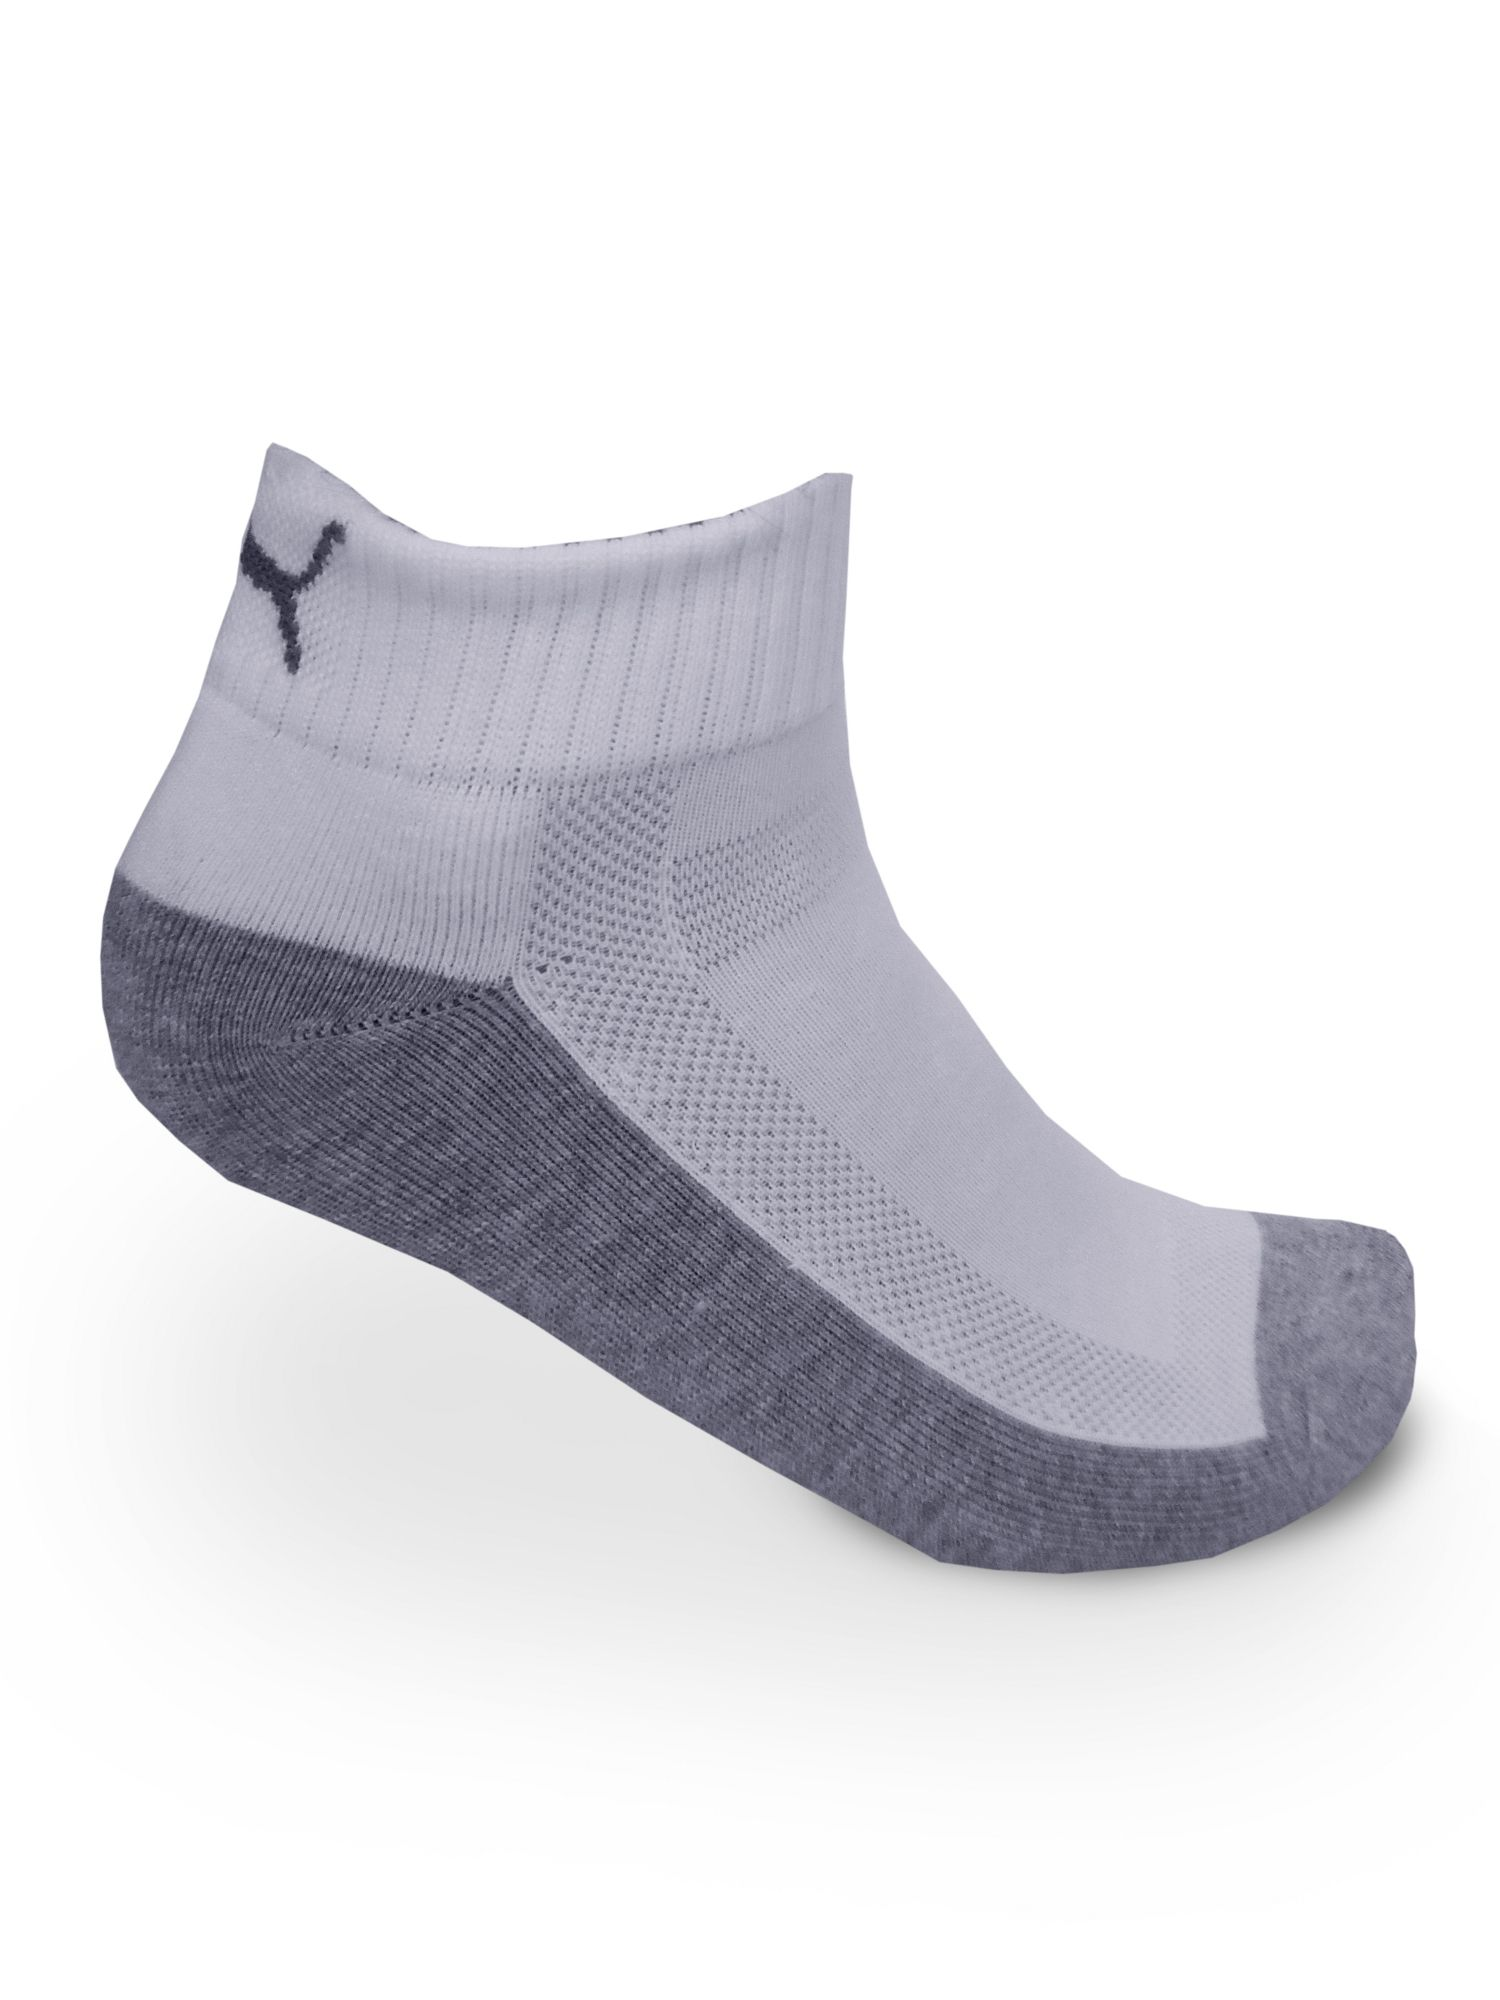 Performance crew two pack socks